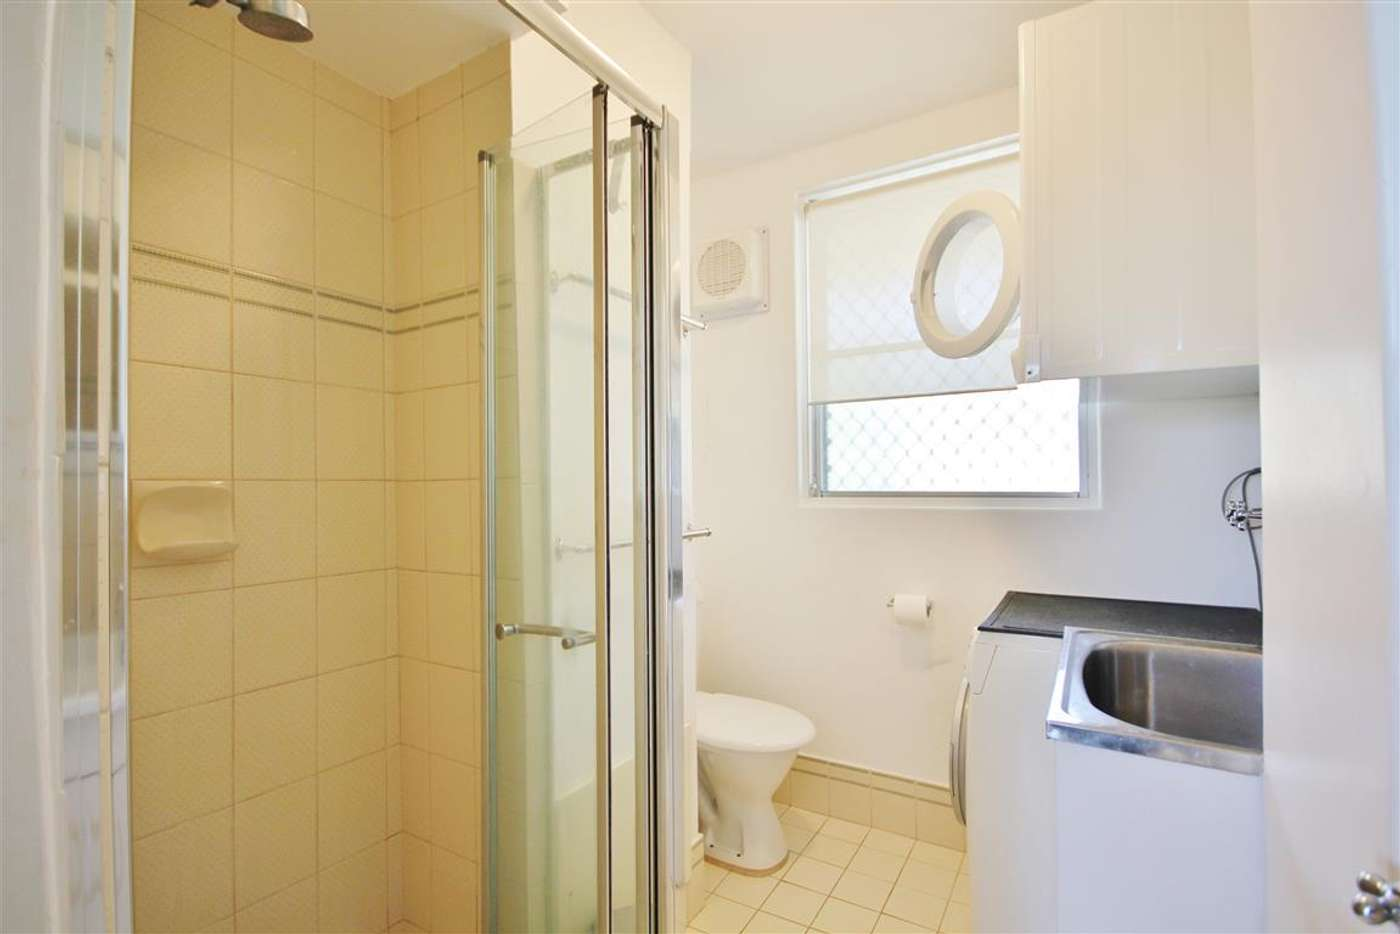 Sixth view of Homely unit listing, 3/24 ONSLOW STREET, South Perth WA 6151